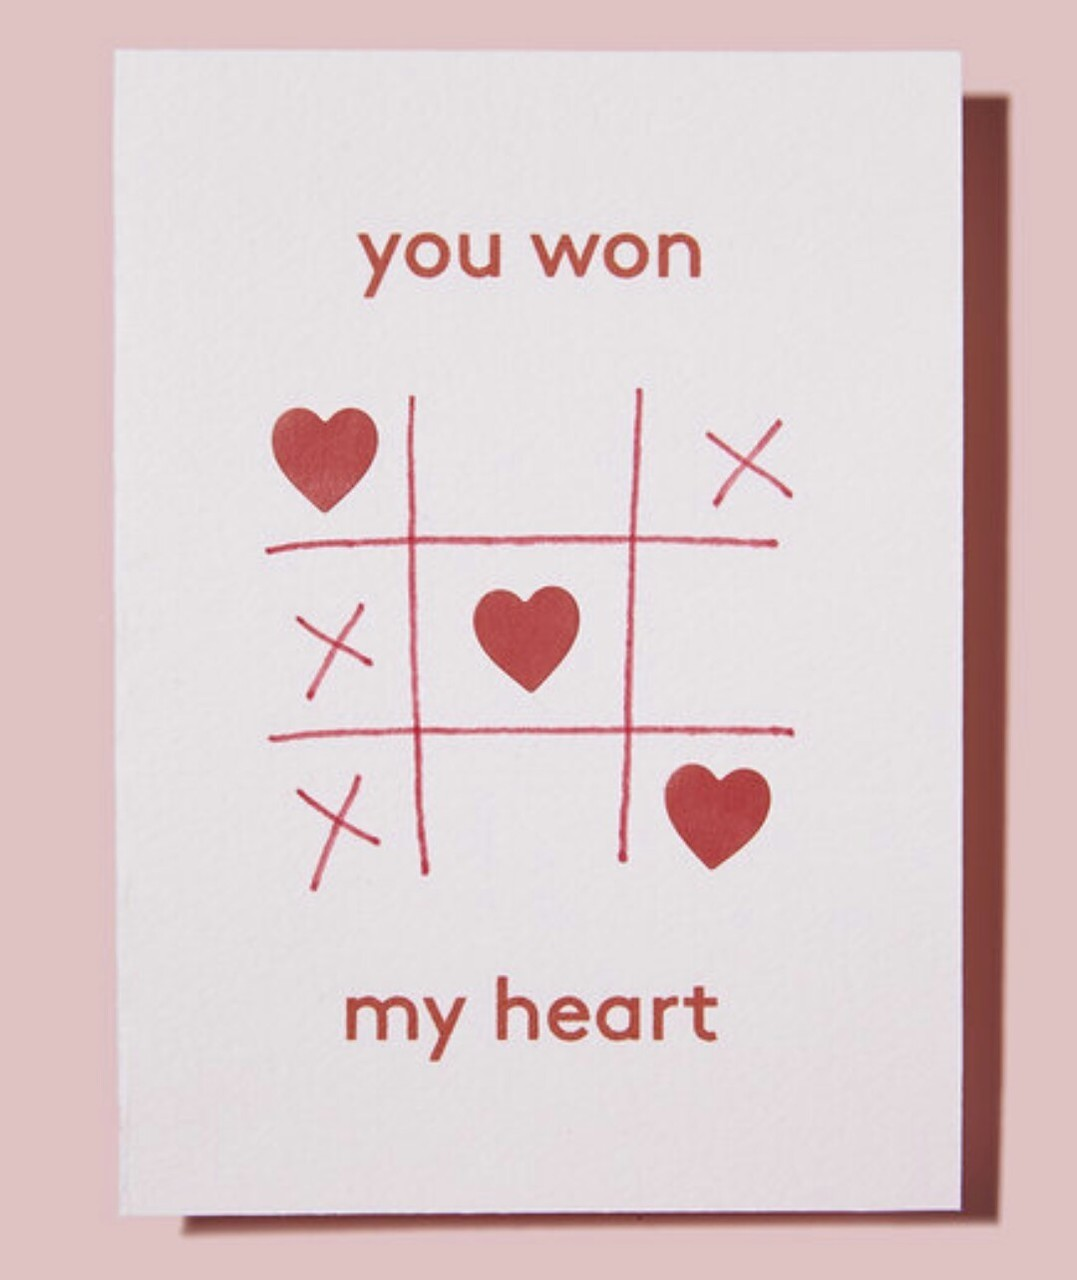 heart, love, and Won image